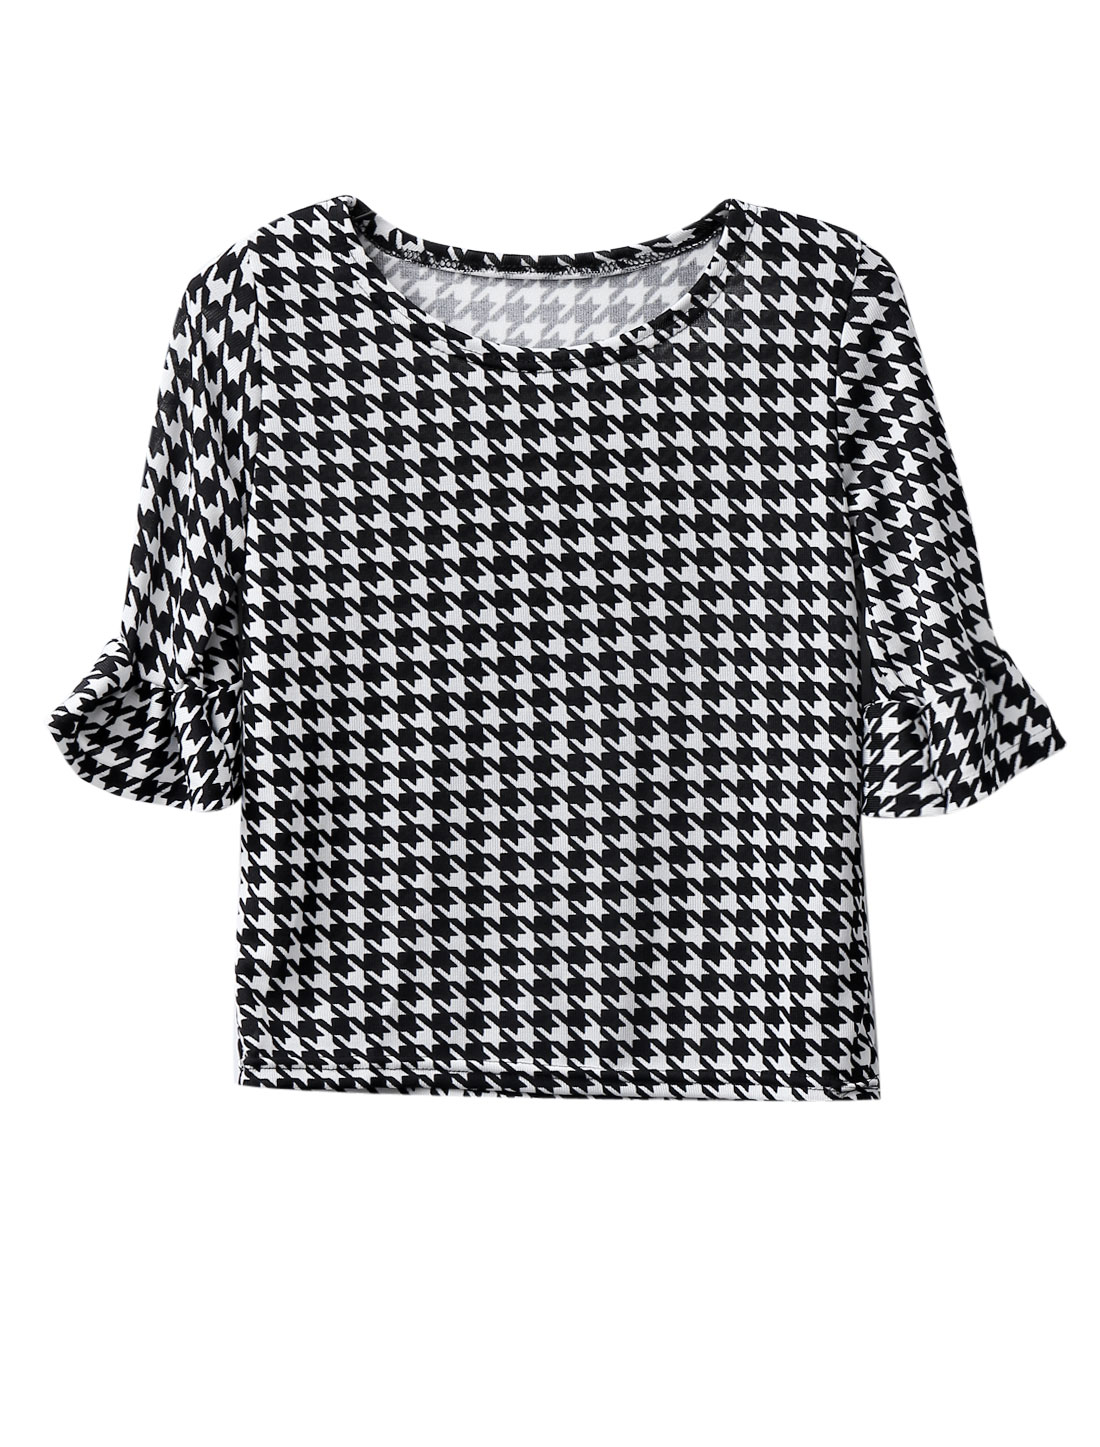 Lady Pullover Round Neck Houndstooth Pattern Soft Casual Top Black White XS